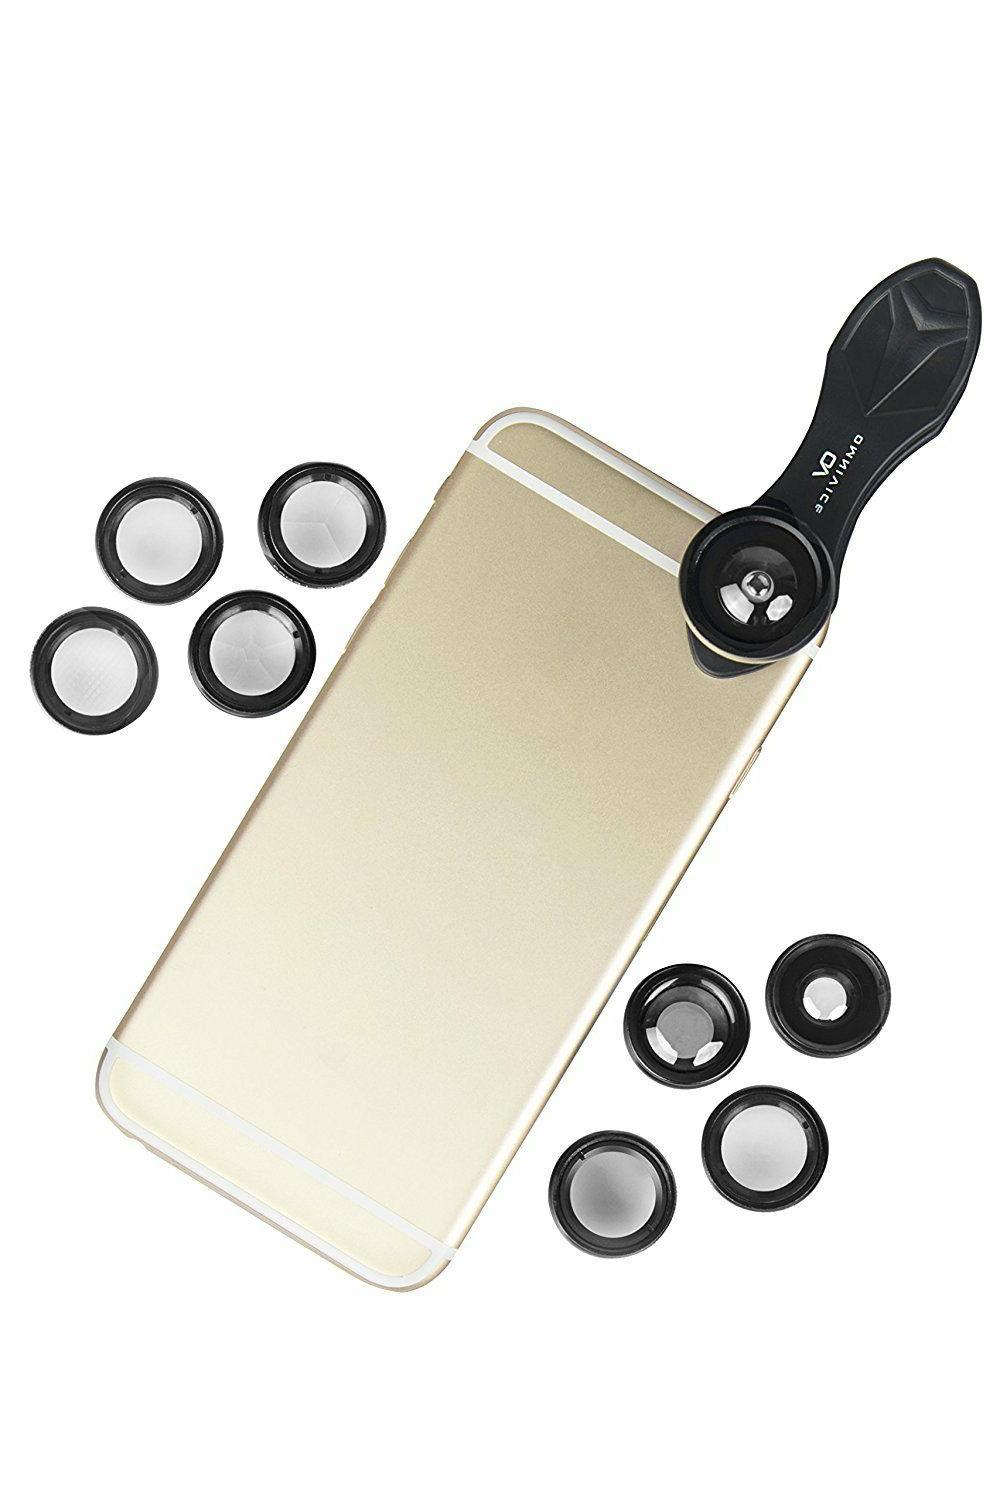 Cell Phone Kit: Clip Attachment for